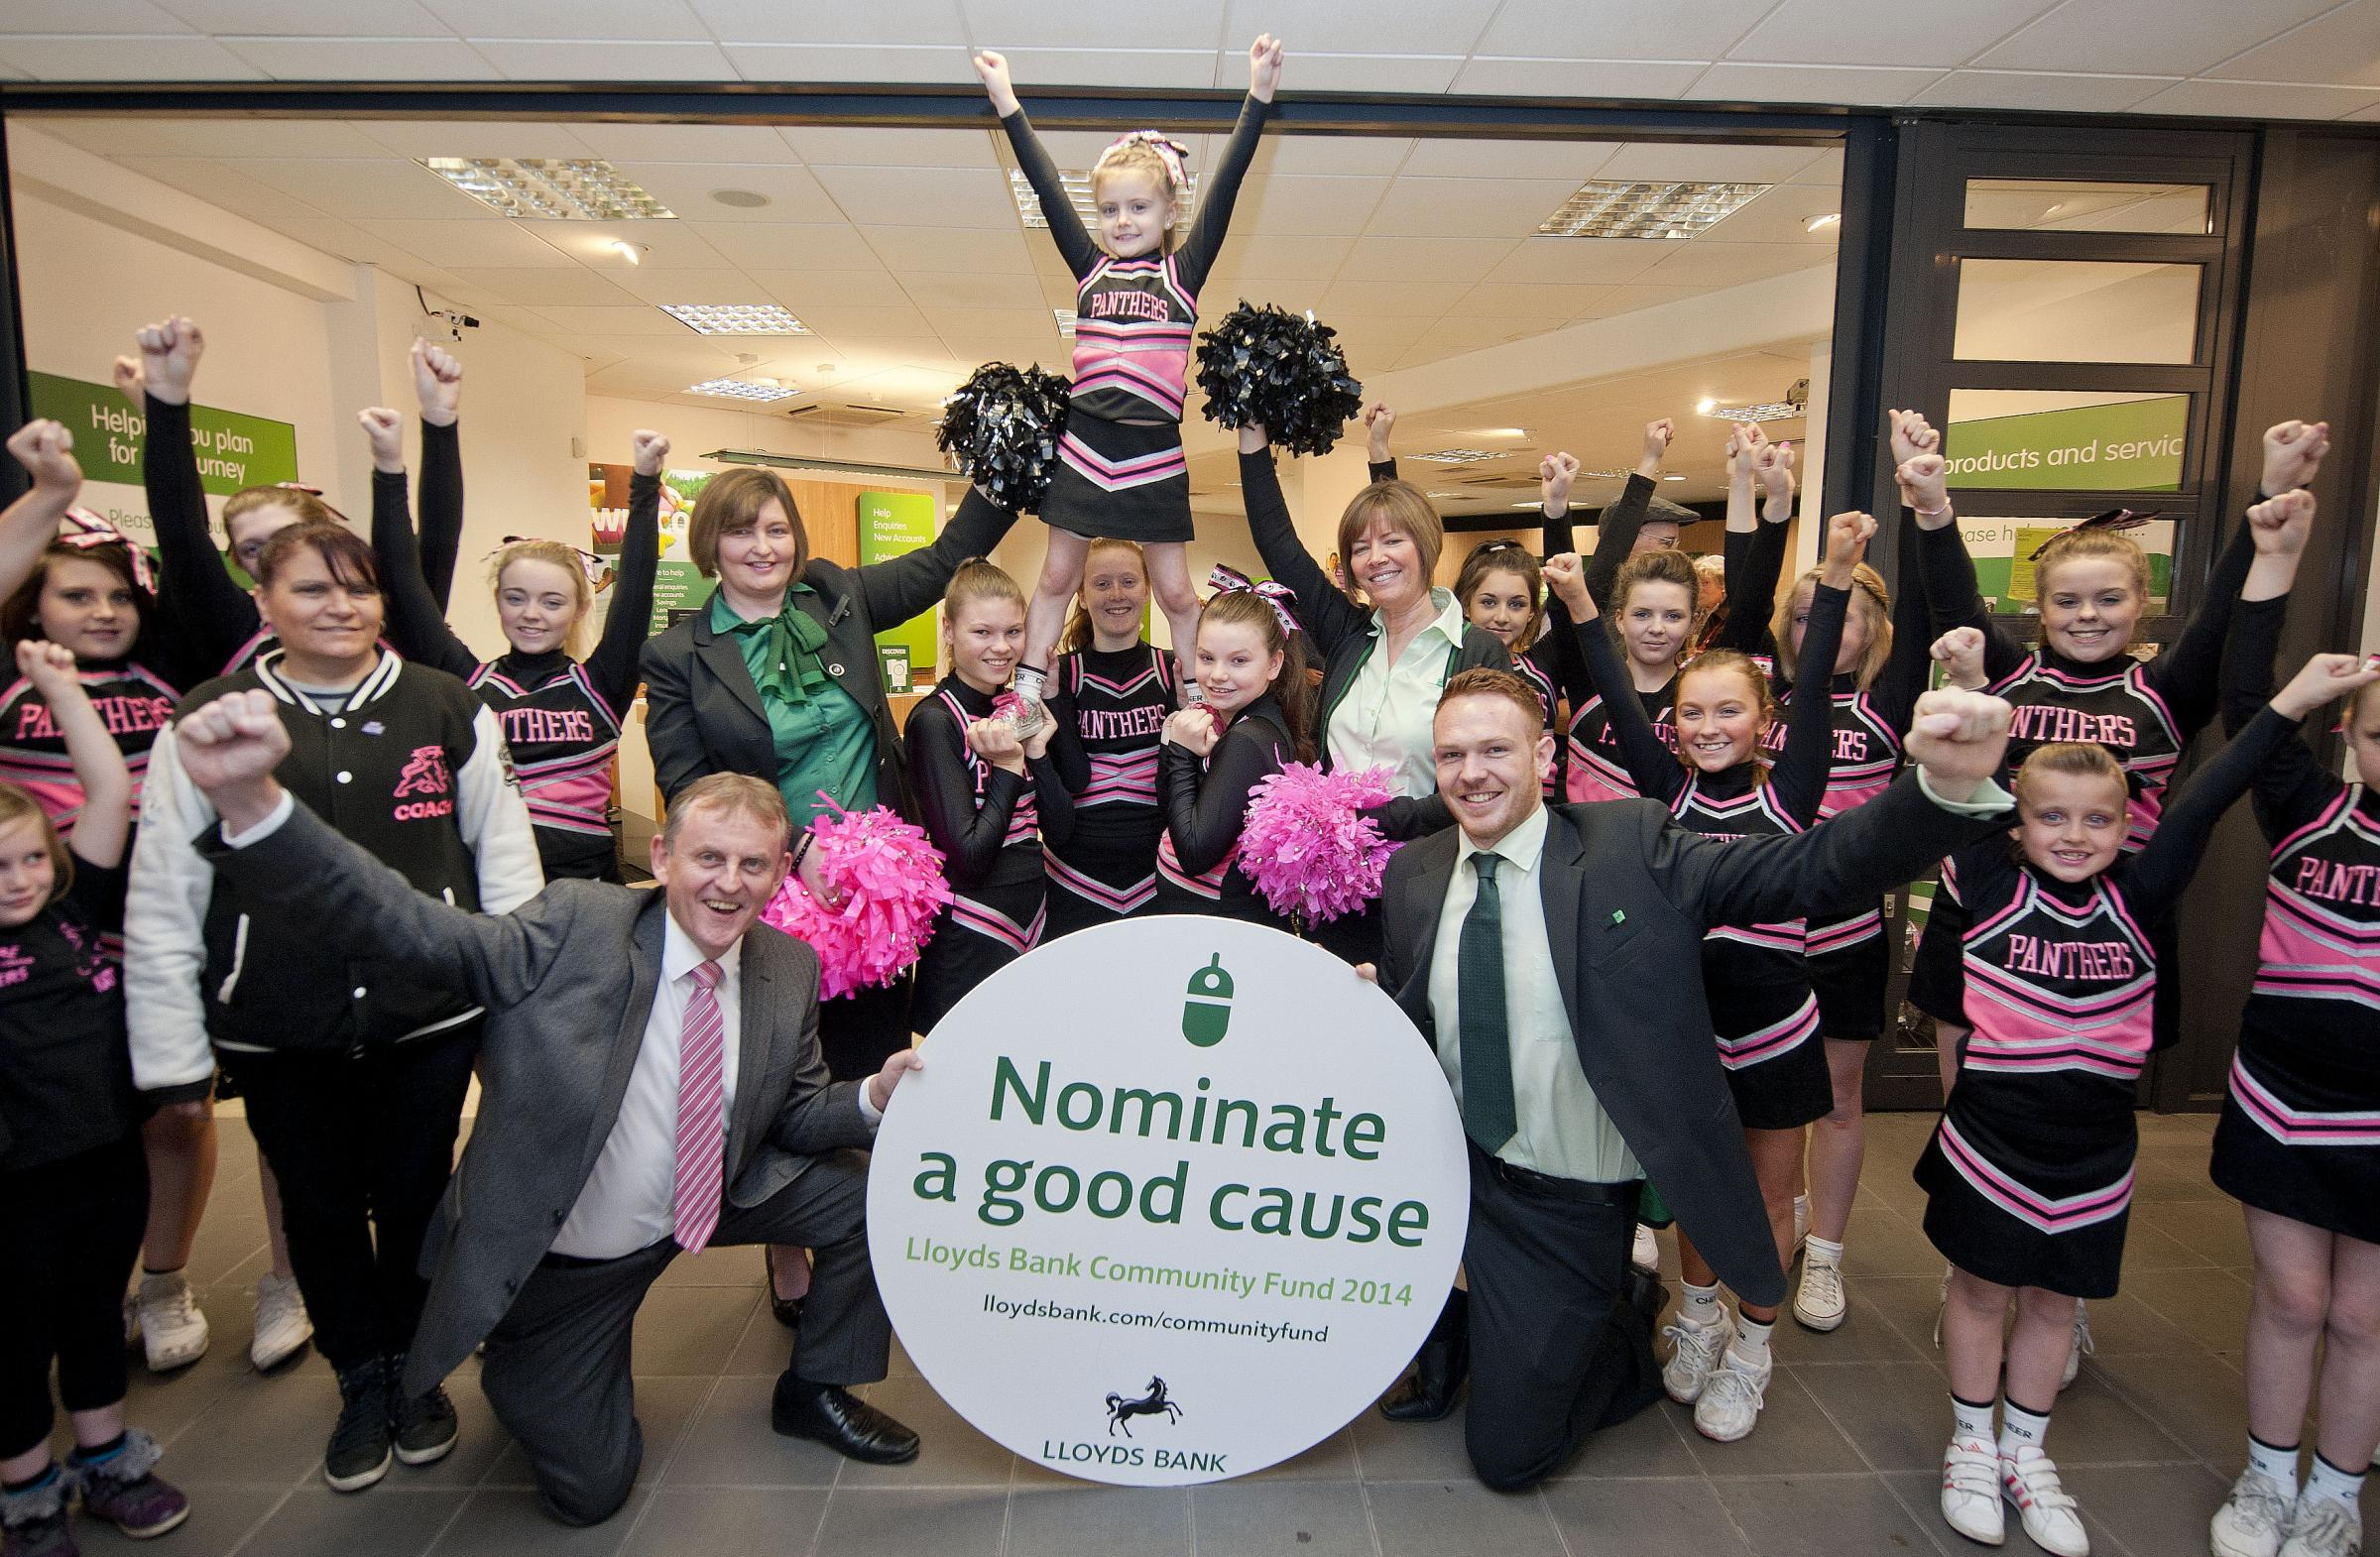 Lloyds Bank staff (left to right) - Brian Cartwright, commercial senior manager; Nicola Hartland, customer service assistant; Beverley Hassan, customer service assistant; and Lawrence Breese, personal banking advisor; with Pedmore Panthers cheerleaders.